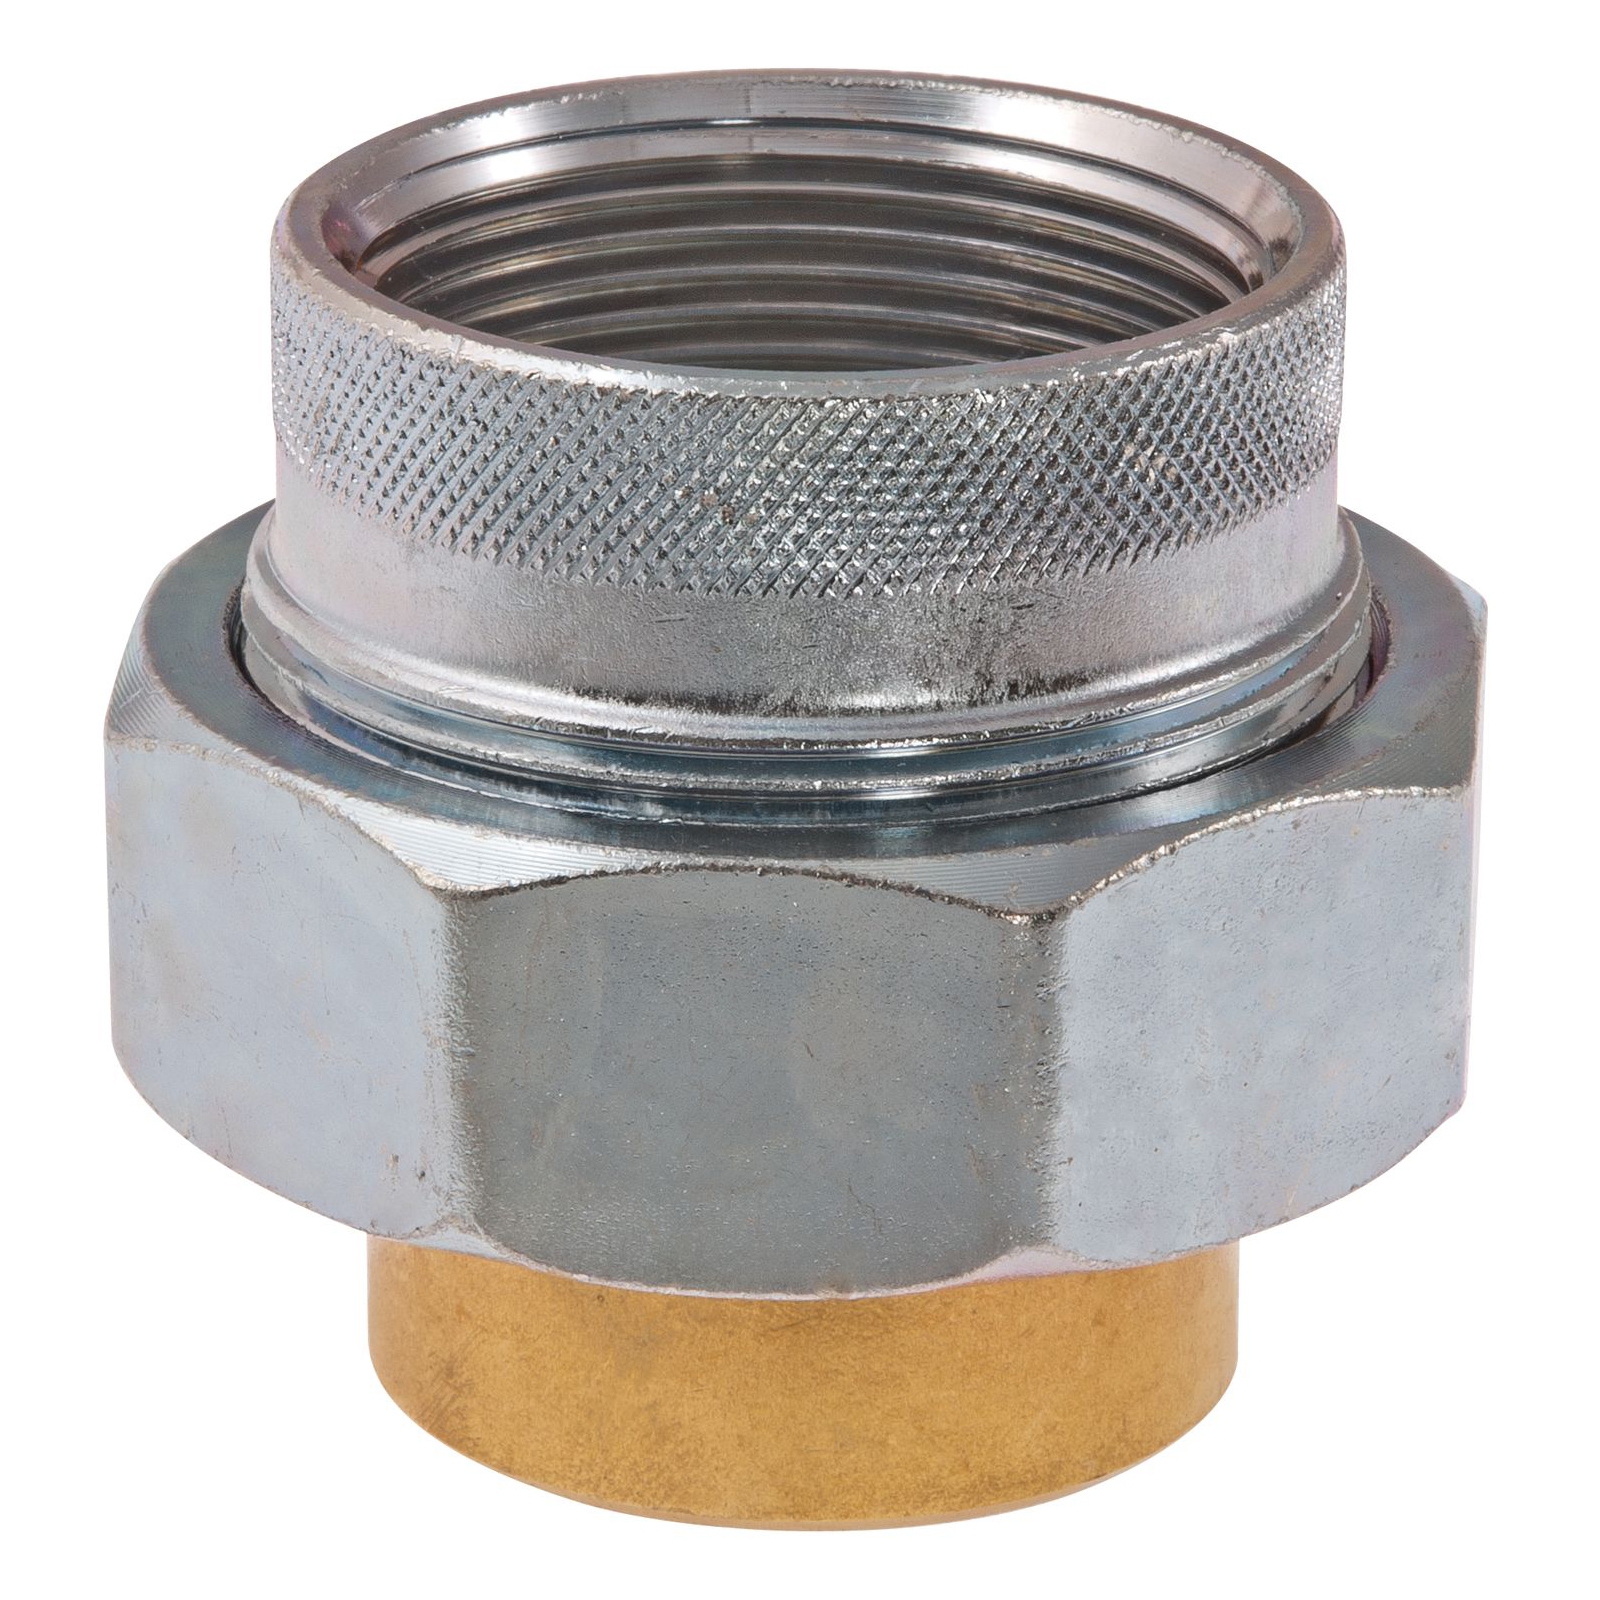 WATTS® 0009891 Dielectric Union, 3/4 in Nominal, FNPT x Solder End Style, Brass, Import